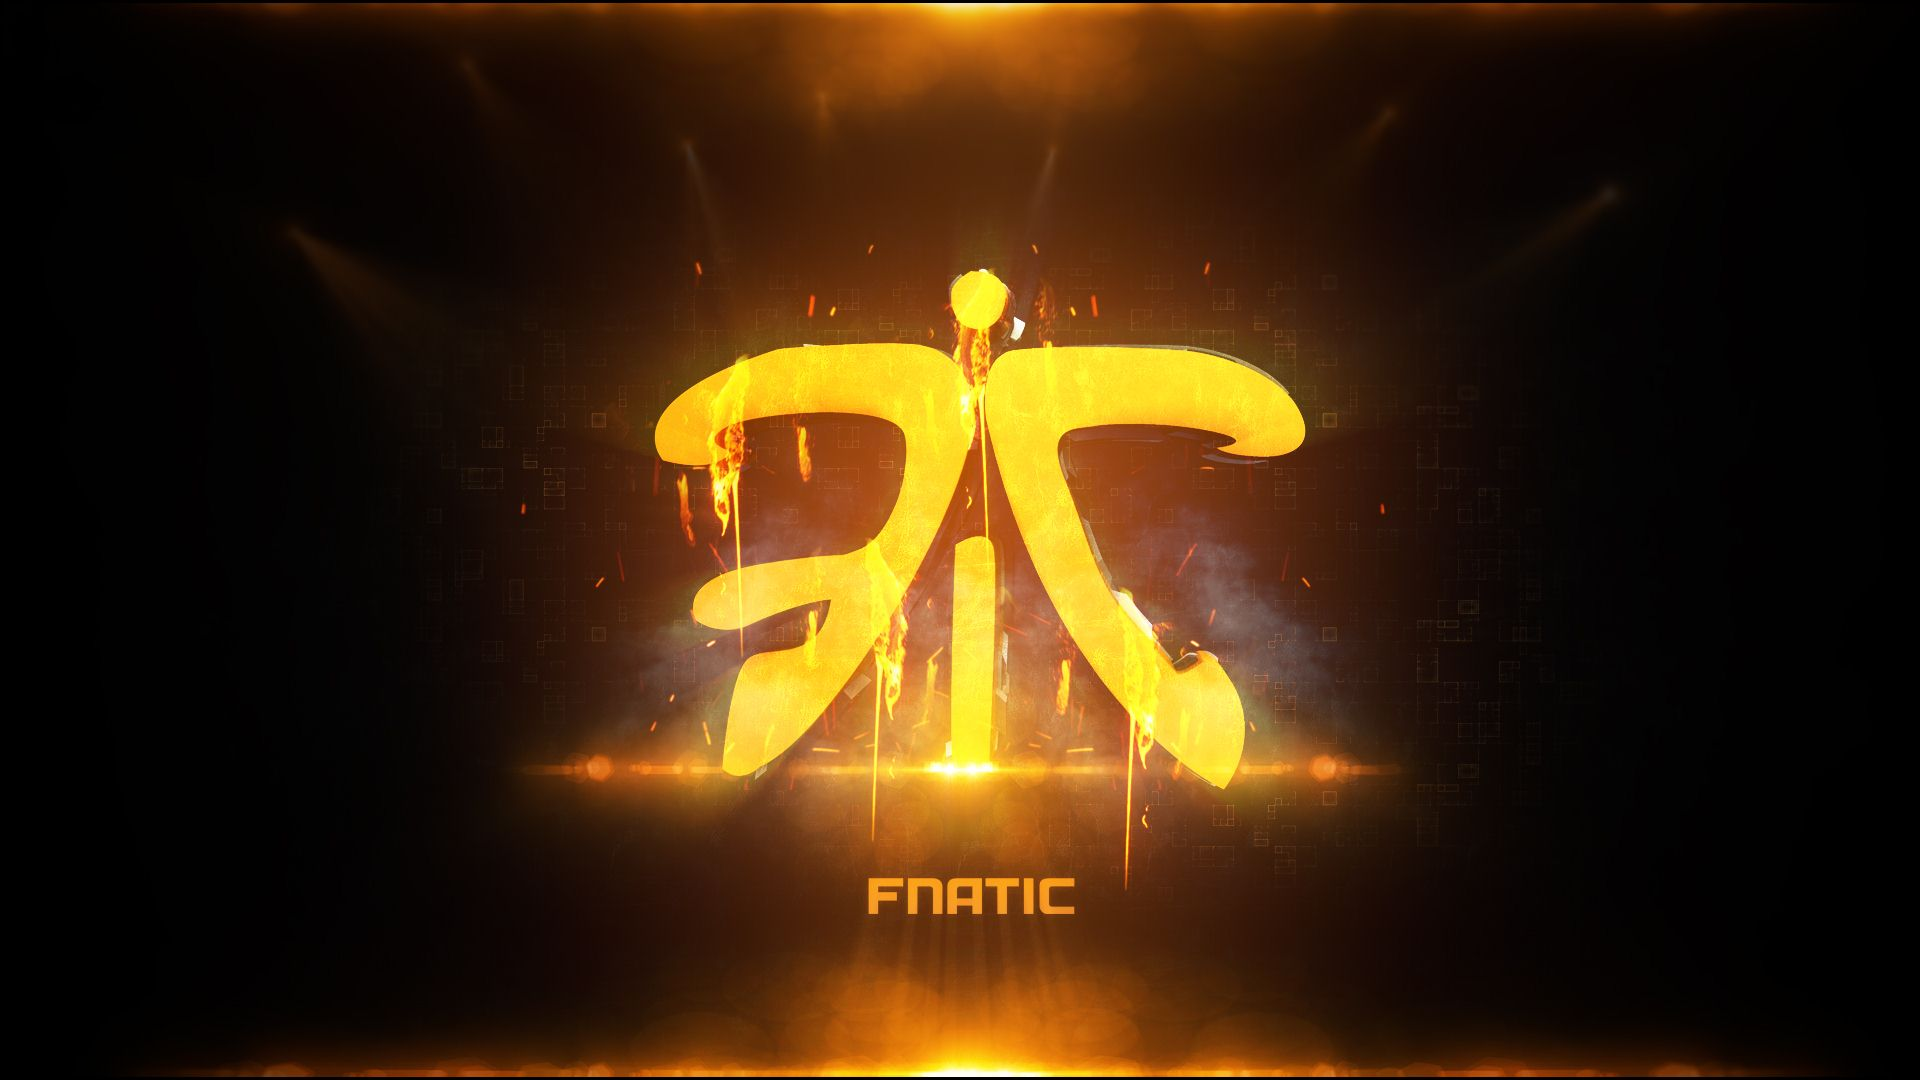 Free Fall Wallpaper For Android Fnatic Wallpapers Hd Pixelstalk Net